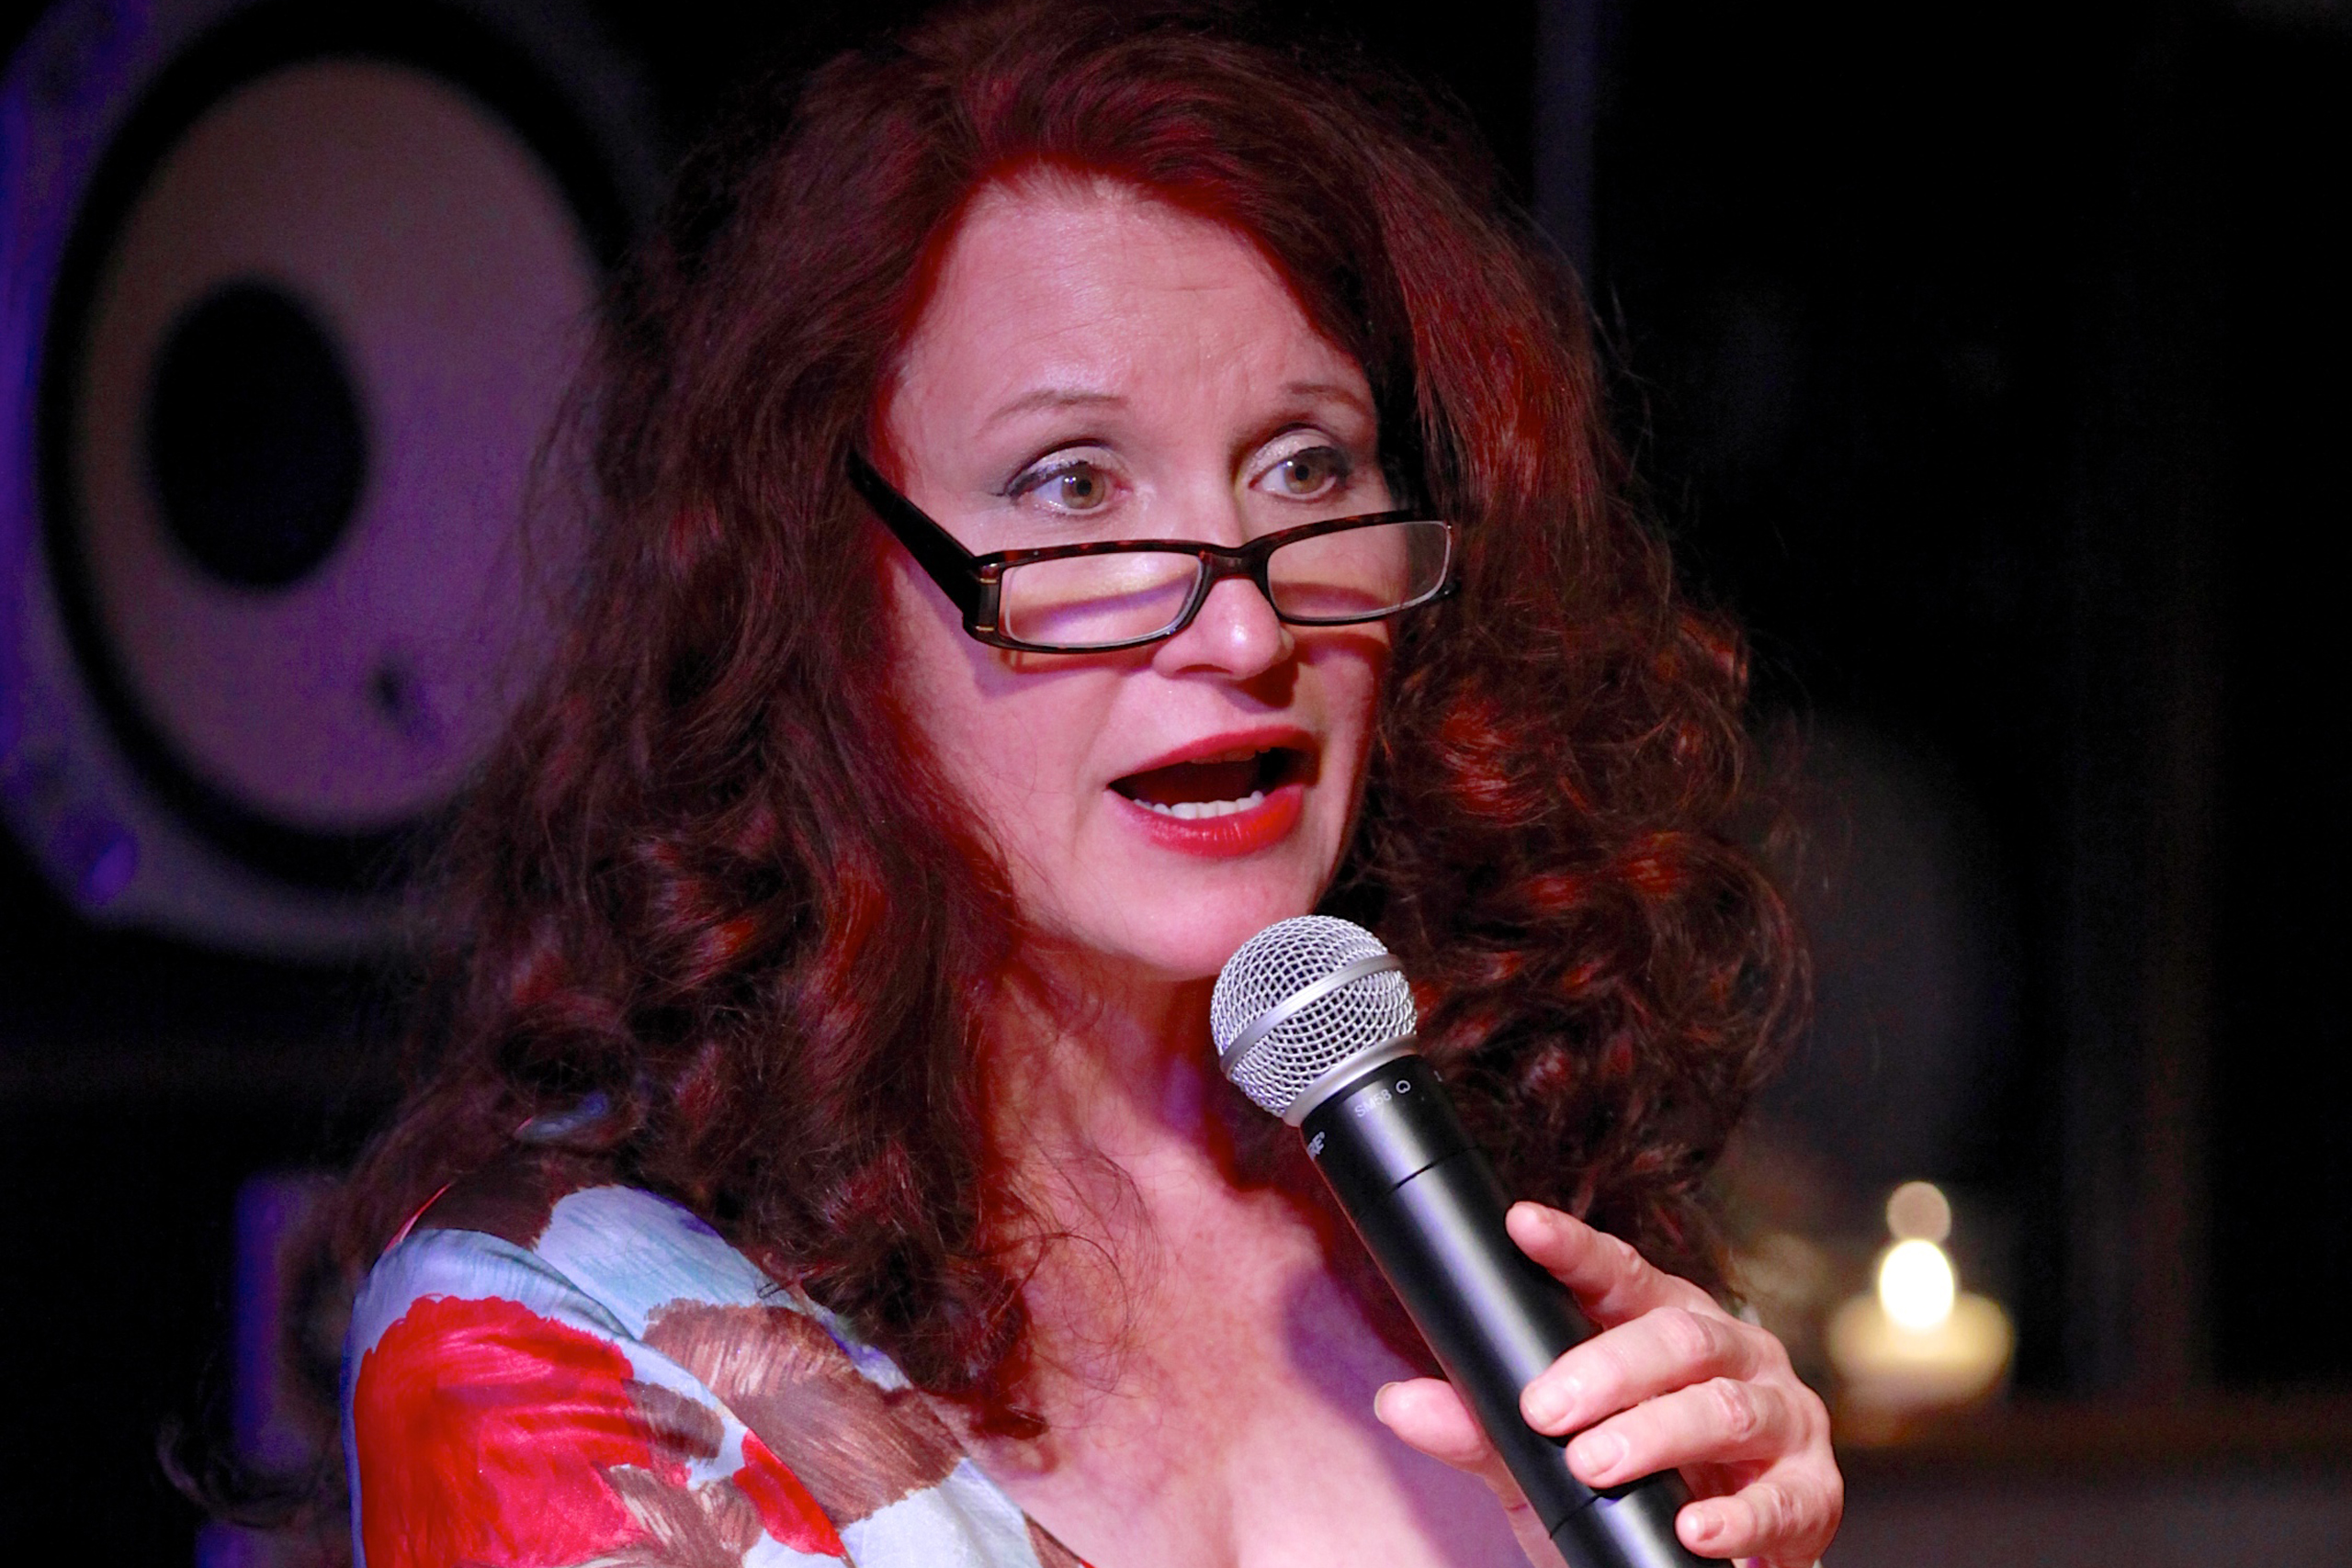 Finley reads at the Free Pussy Riot Public Reading on August 16, 2012 in New York City.